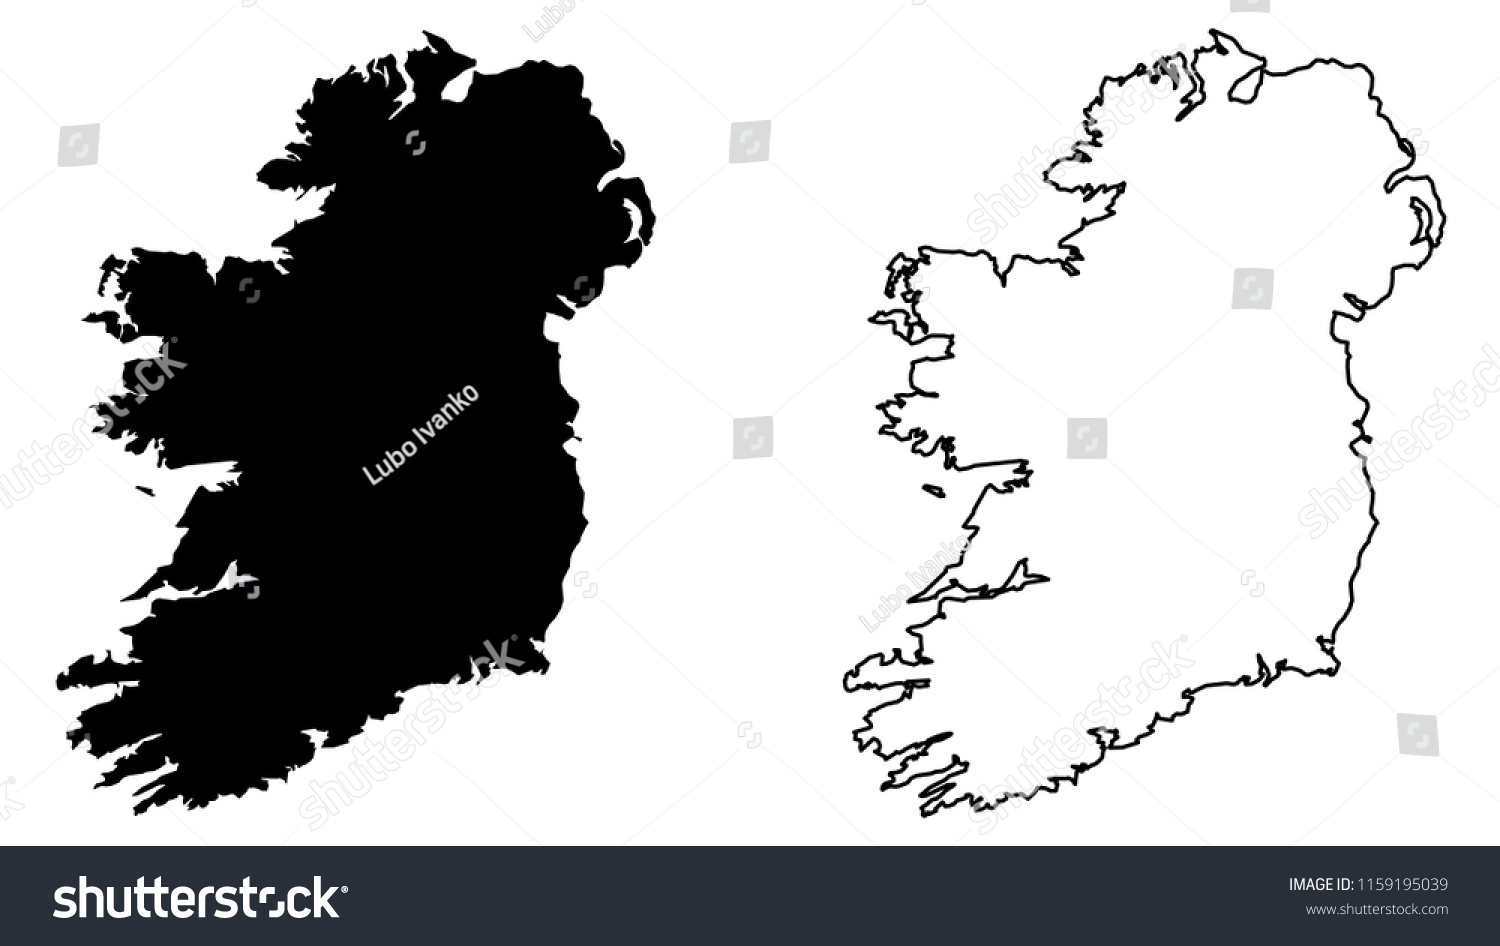 Map Of Ireland Drawing.Simple Only Sharp Corners Map Ireland Stock Vector Royalty Free